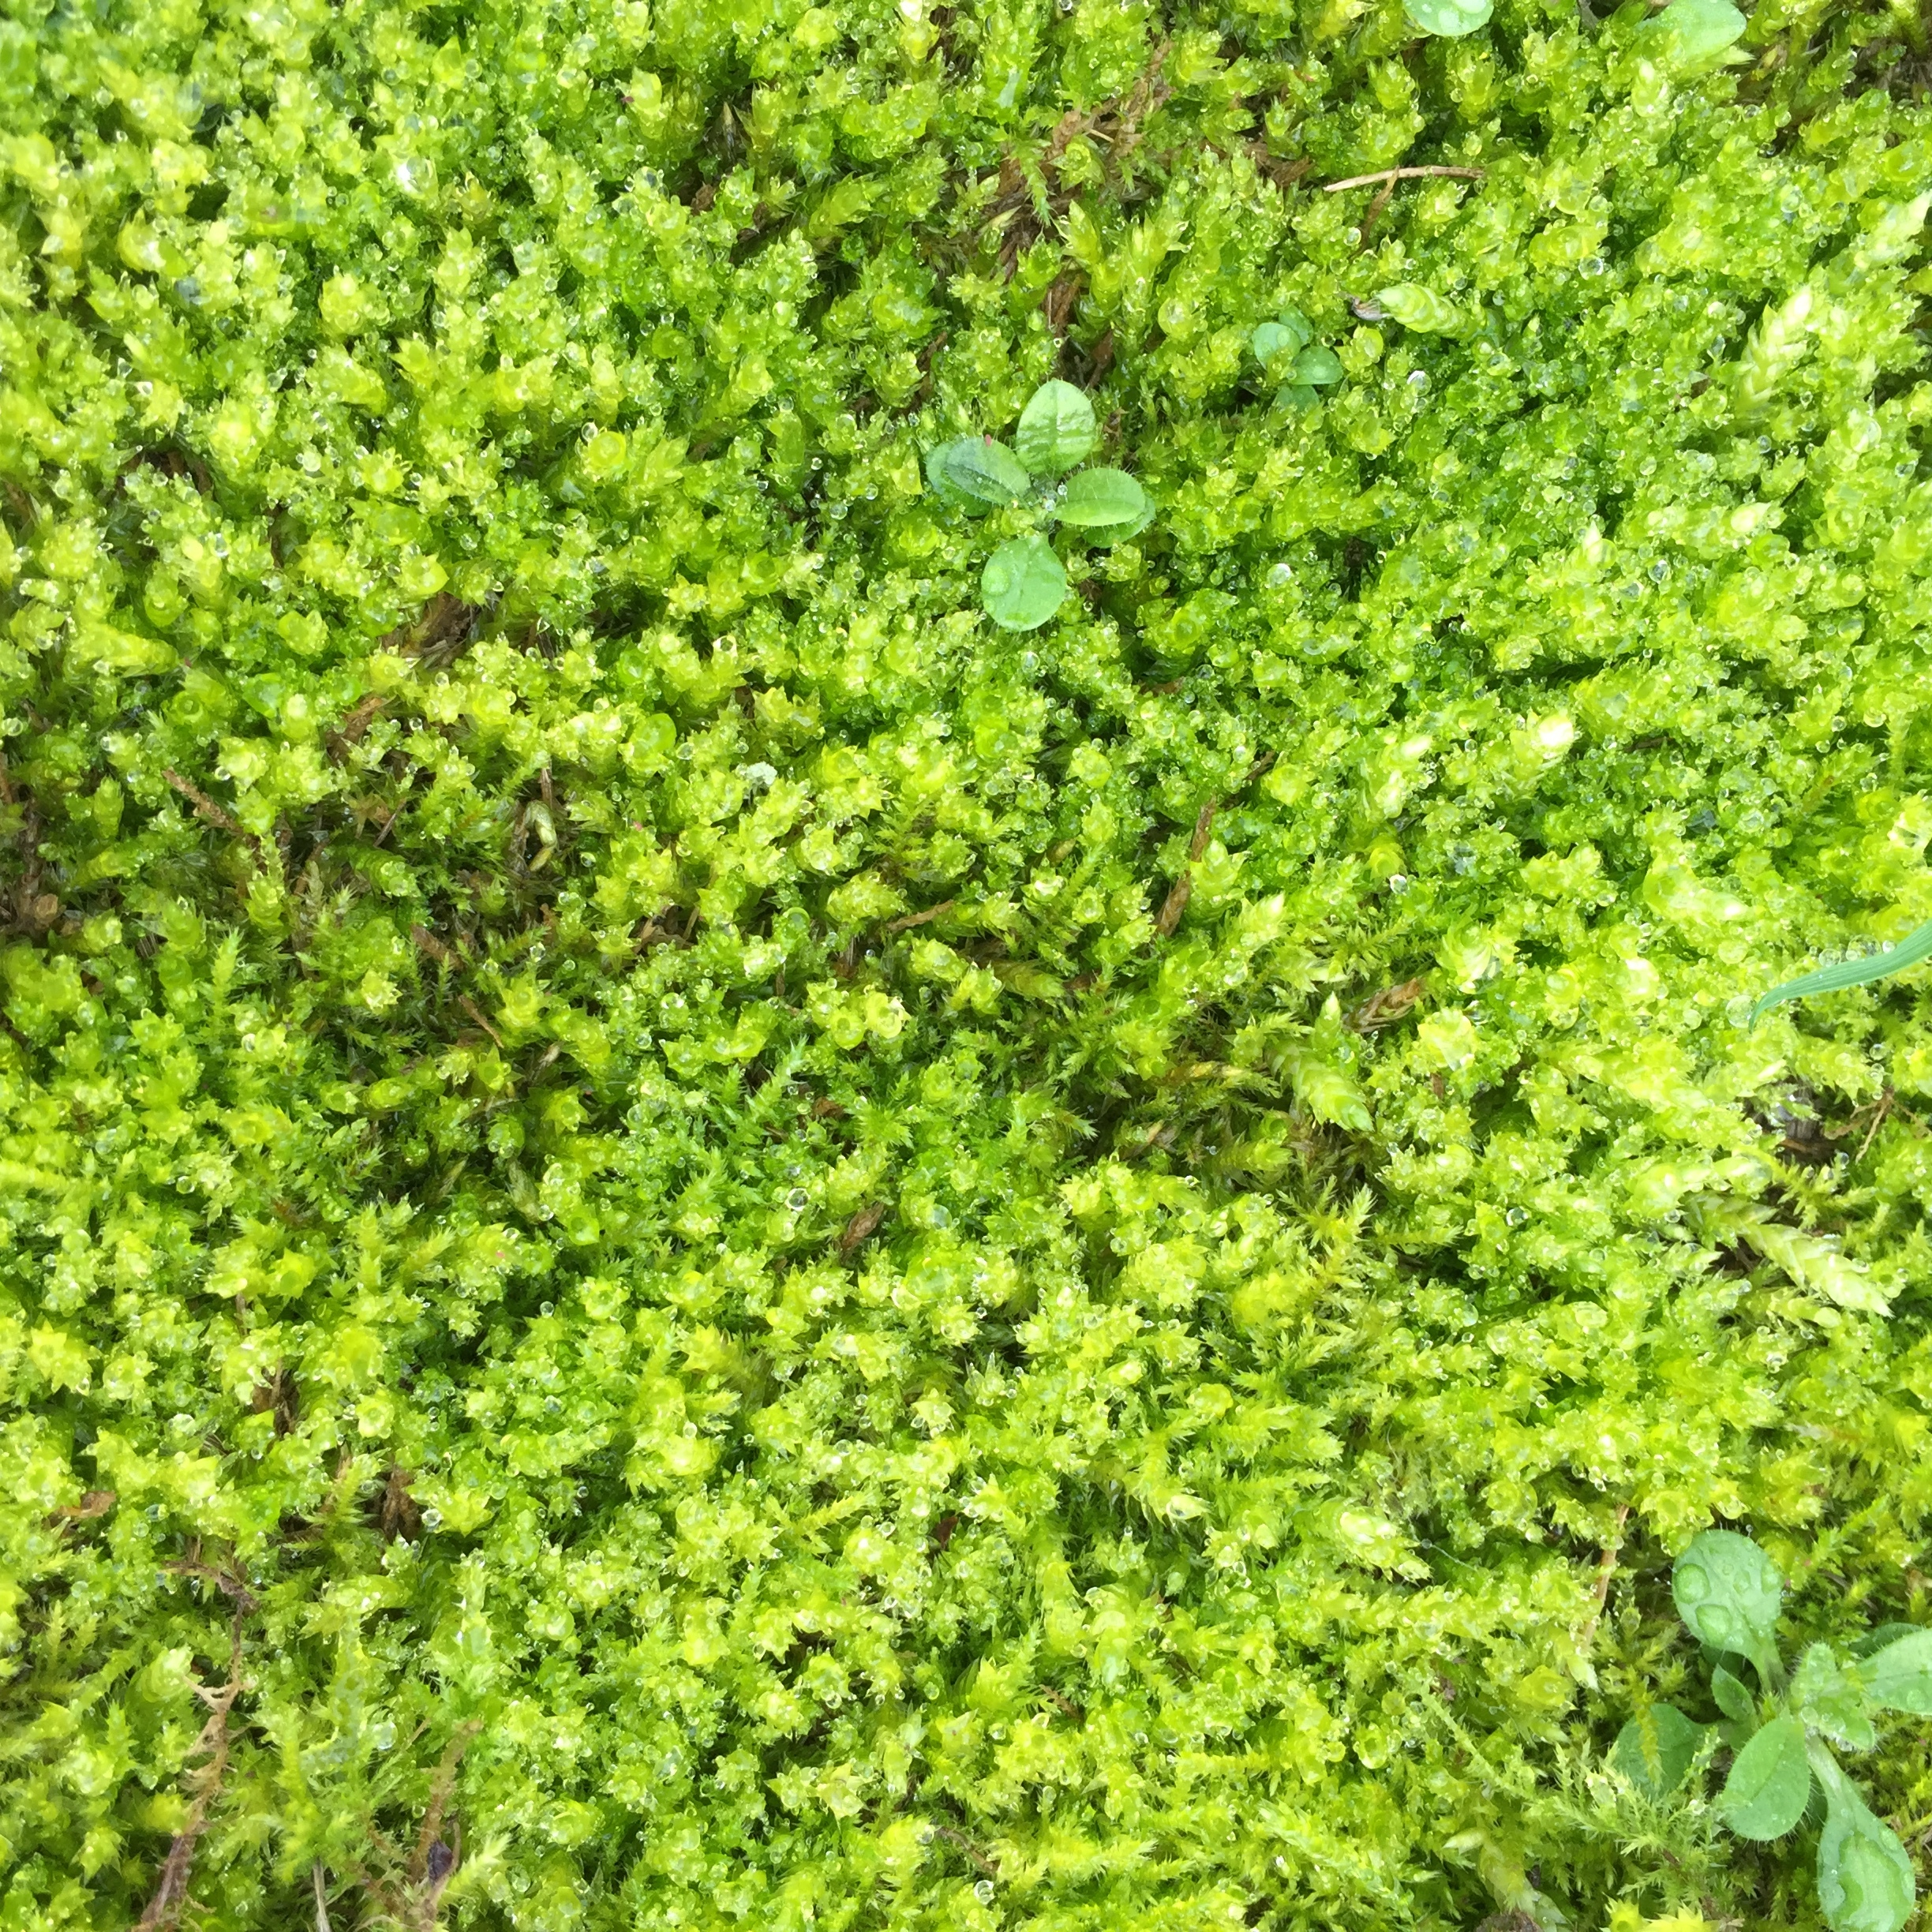 Moss  may not be what you want in your lawn, but here it adds to the biodiversity of the Rec. Moss has many uses, healing wounds being one of them! It saved many soldiers lives in WW1!